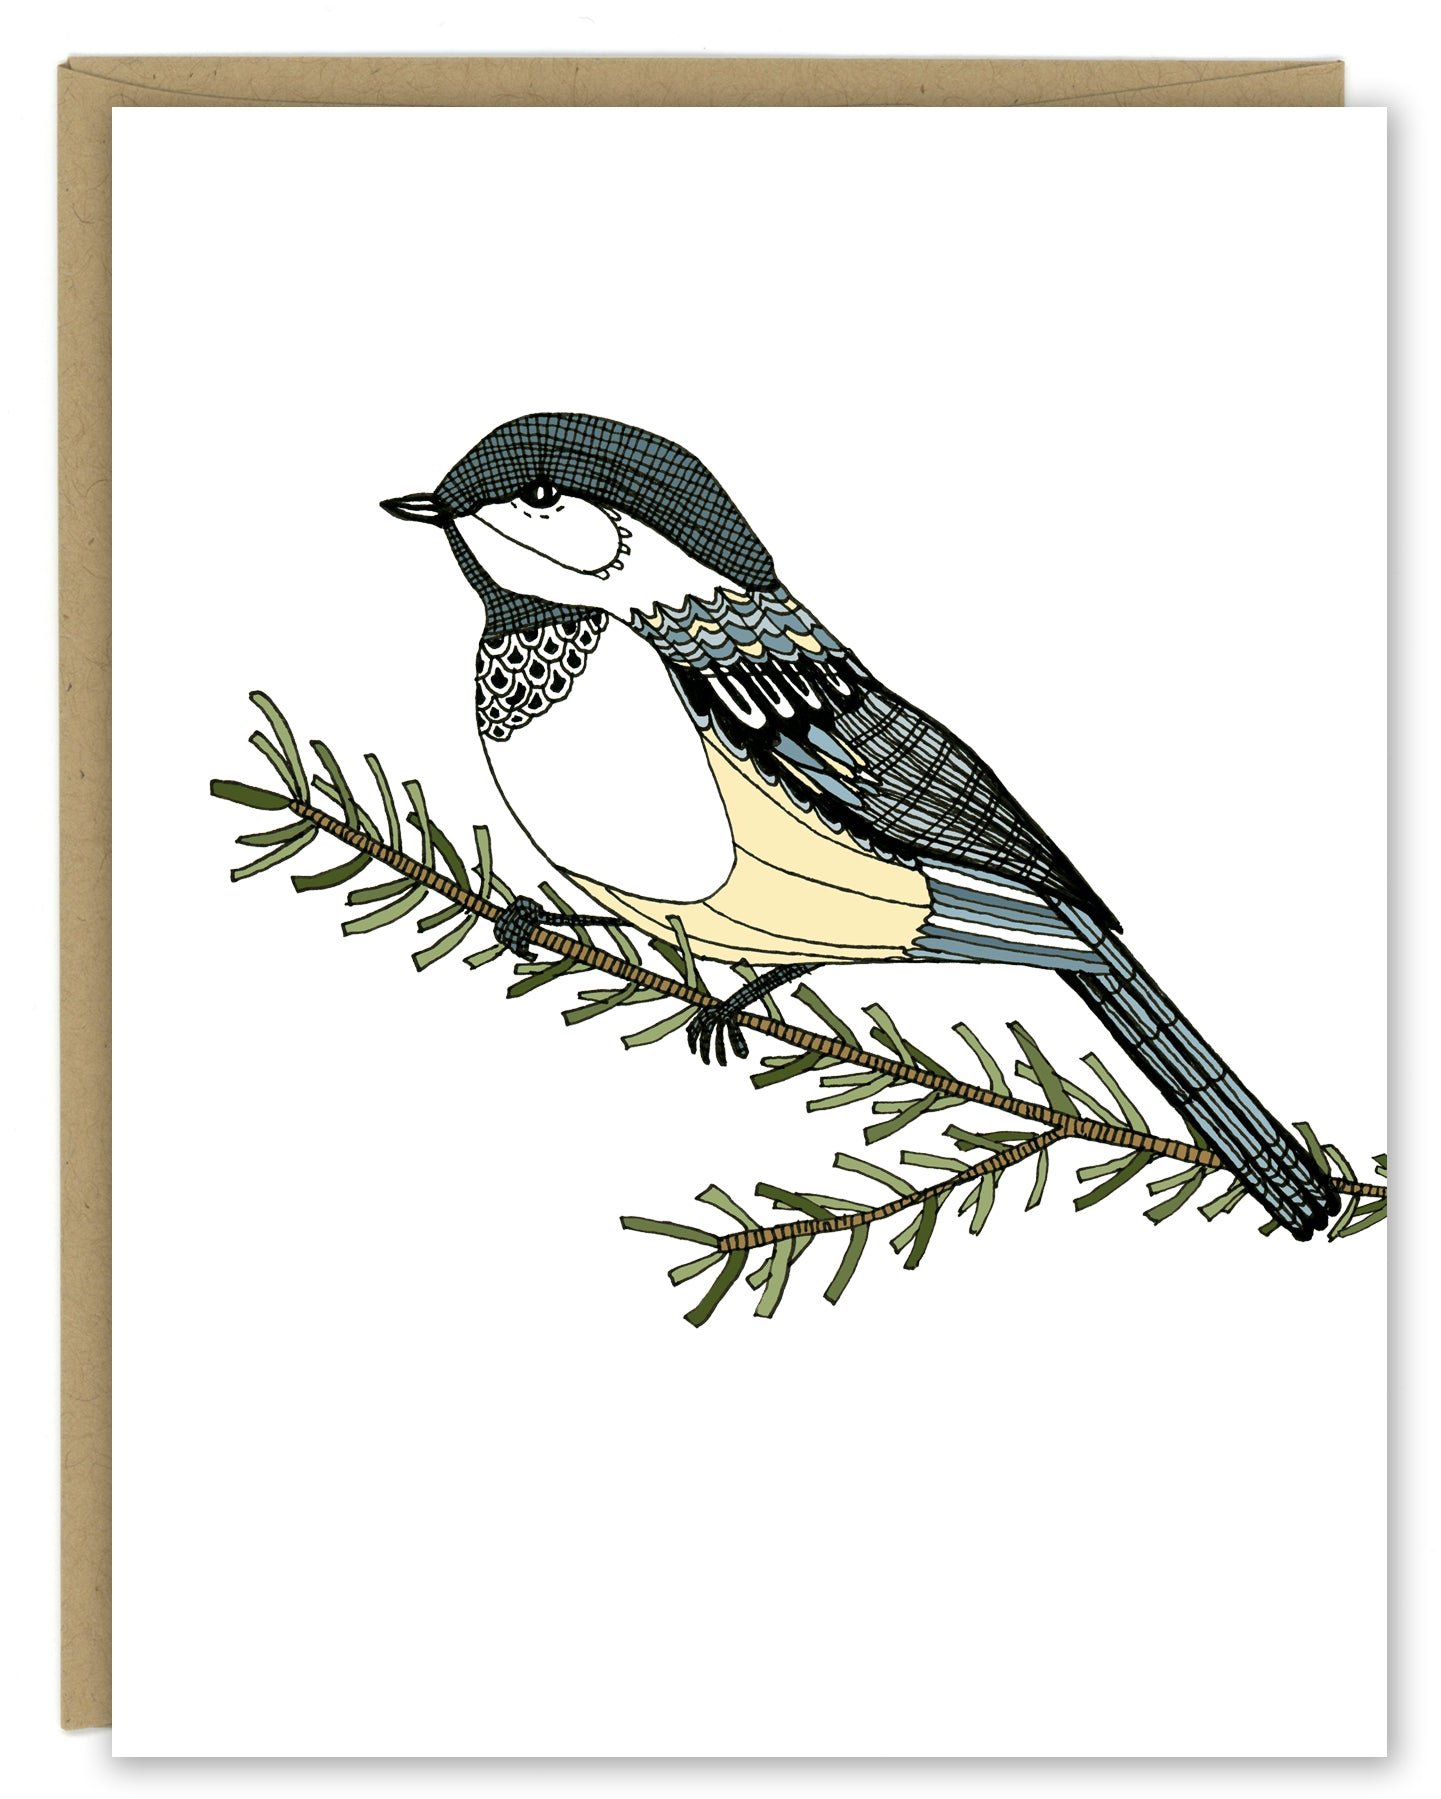 A greeting card with a hand-drawn ink illustration of a chickadee resting on a branch. Shown with a Kraft paper envelope on a white background.